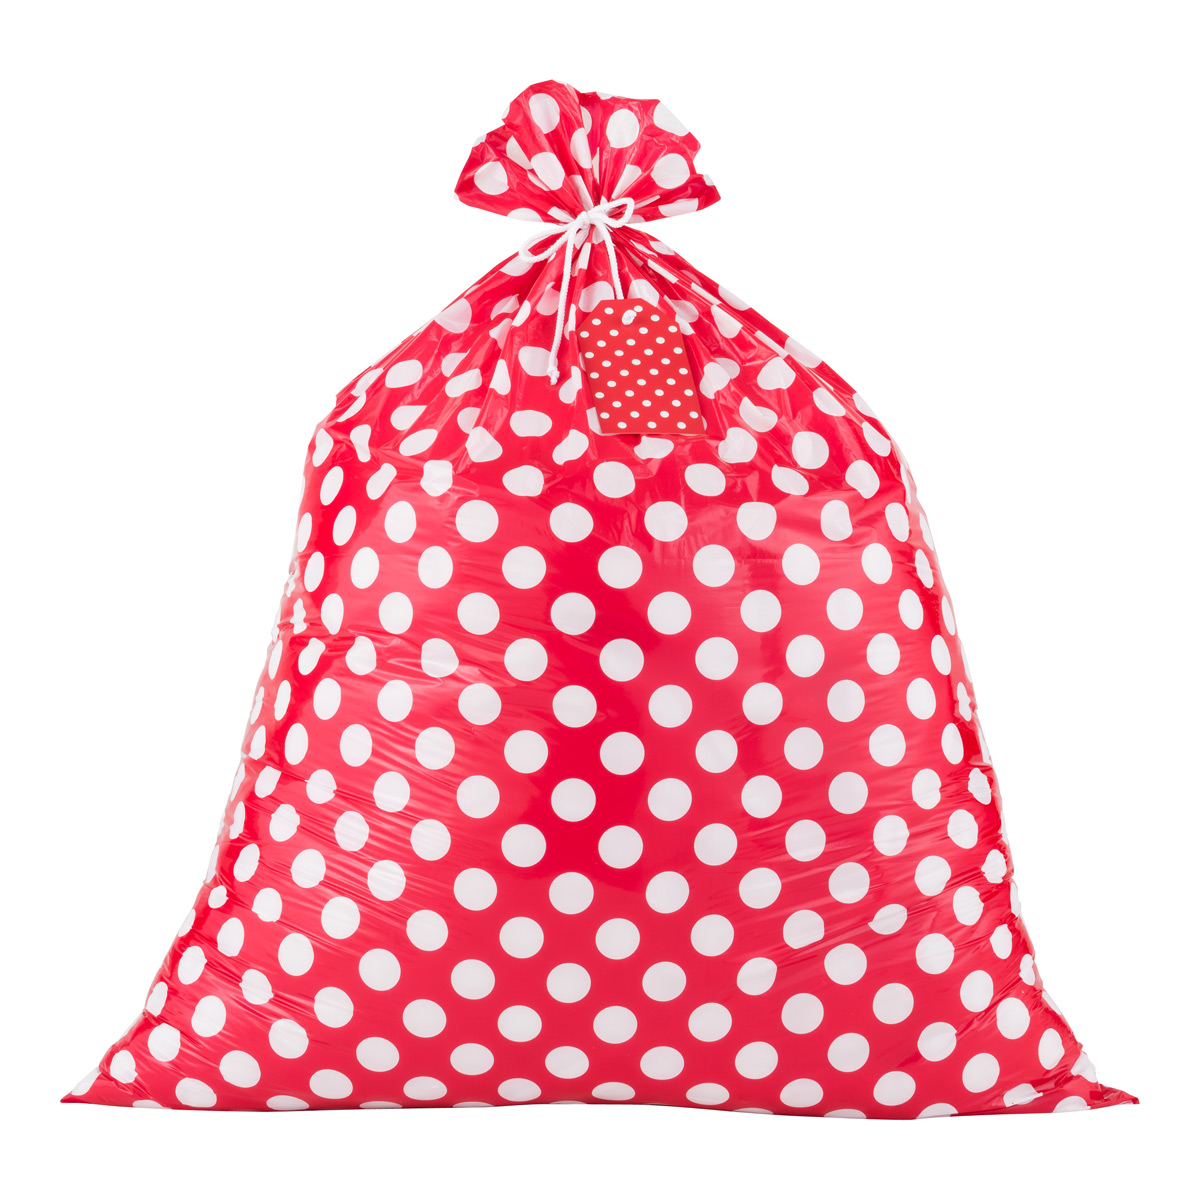 Mega Dot Giant Gift Sack